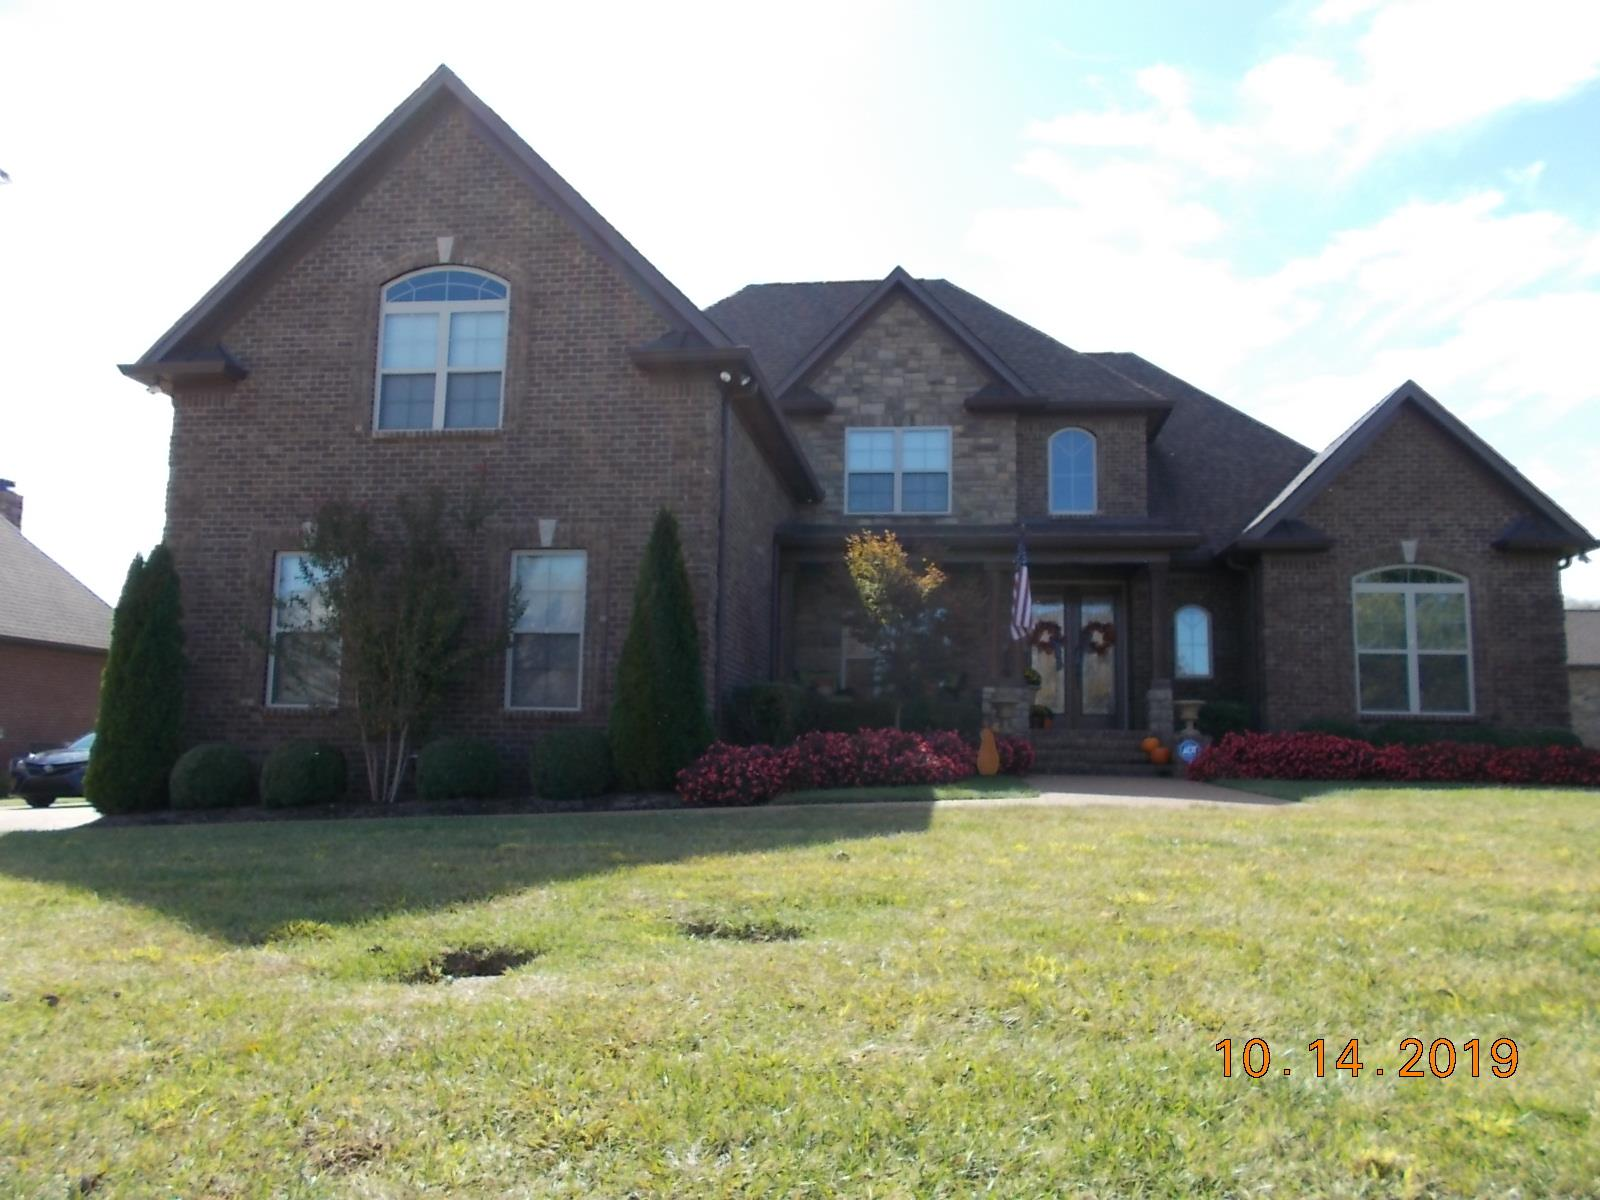 430 Huntington Dr, Lebanon, TN 37087 - Lebanon, TN real estate listing